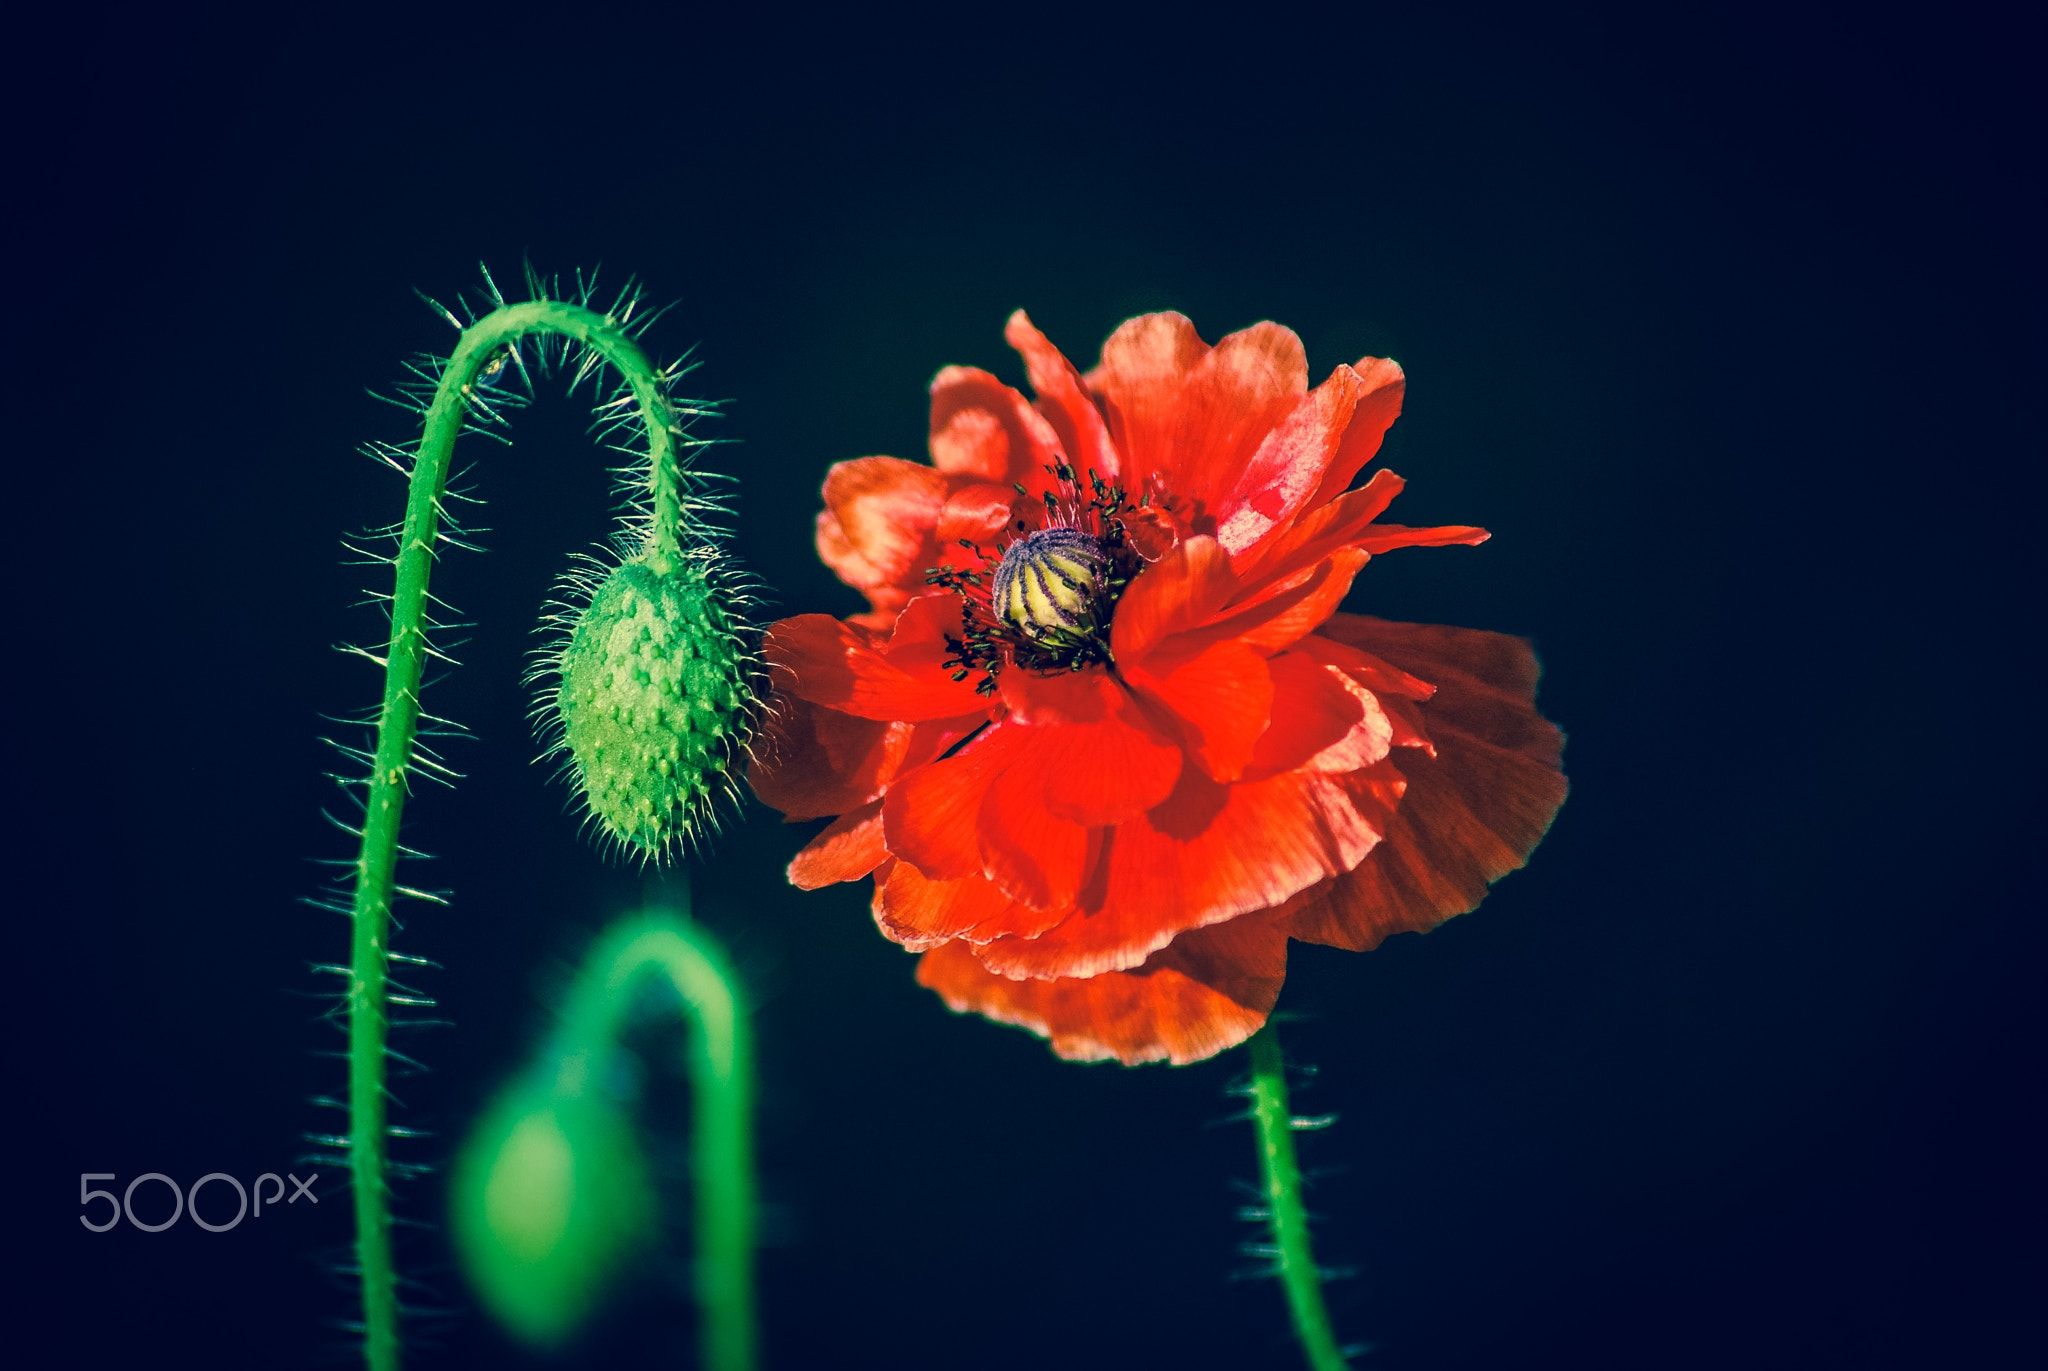 Red Poppy  To view more of my other work you can checkout my